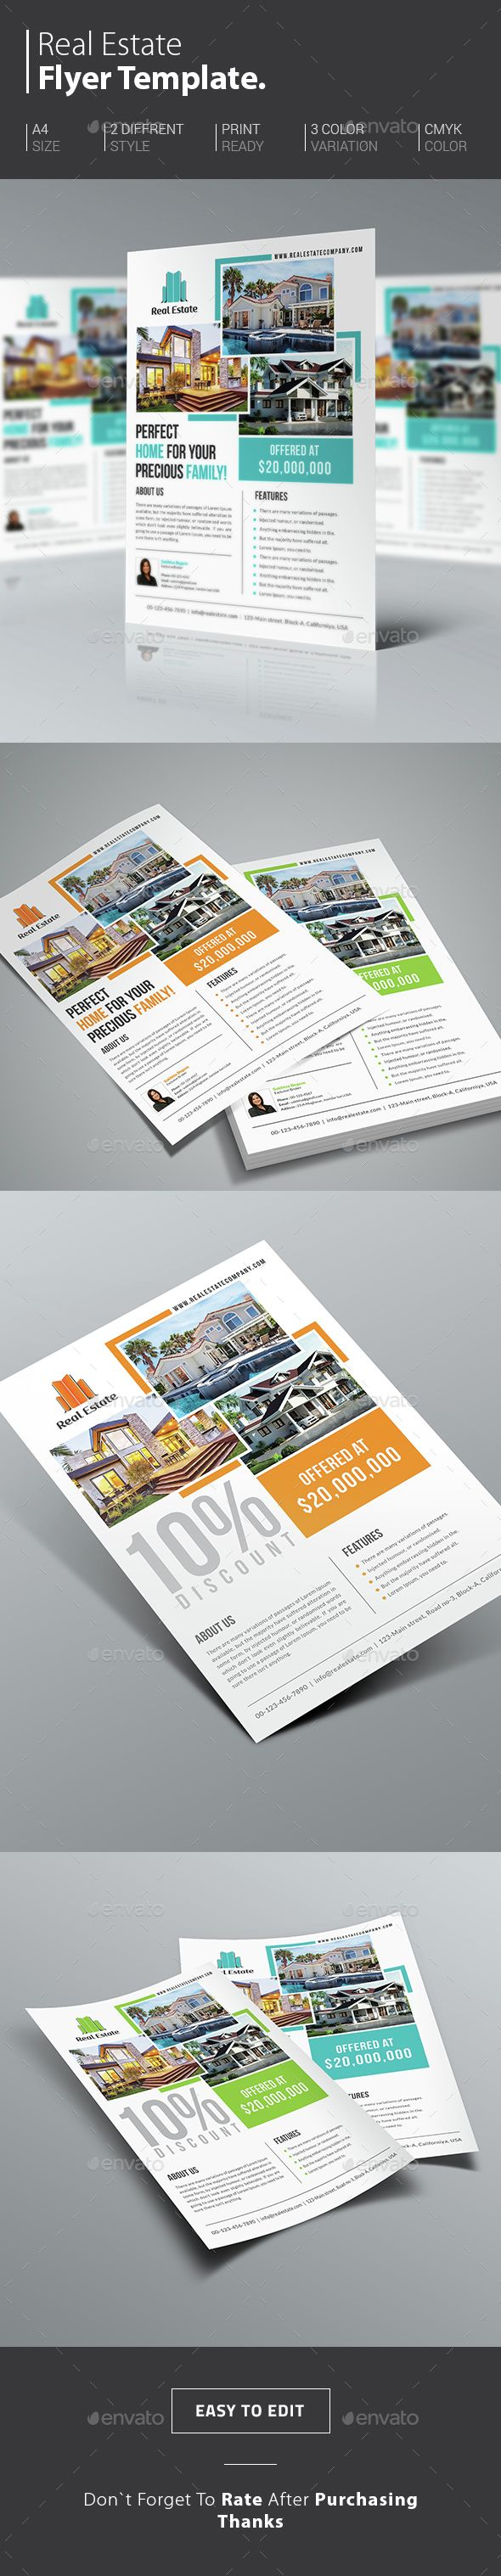 Real Estate PSD Flyer Template + Real Estate Magazine Ad Design Template | Real Estate Flyer - Real Estate Flyer design | Commercial Real Estate Flyer - Real Estate Agent Flyer | Open House Flyer Template | http://graphicriver.net/item/real-estate-flyer/14643847?ref=themedevisers